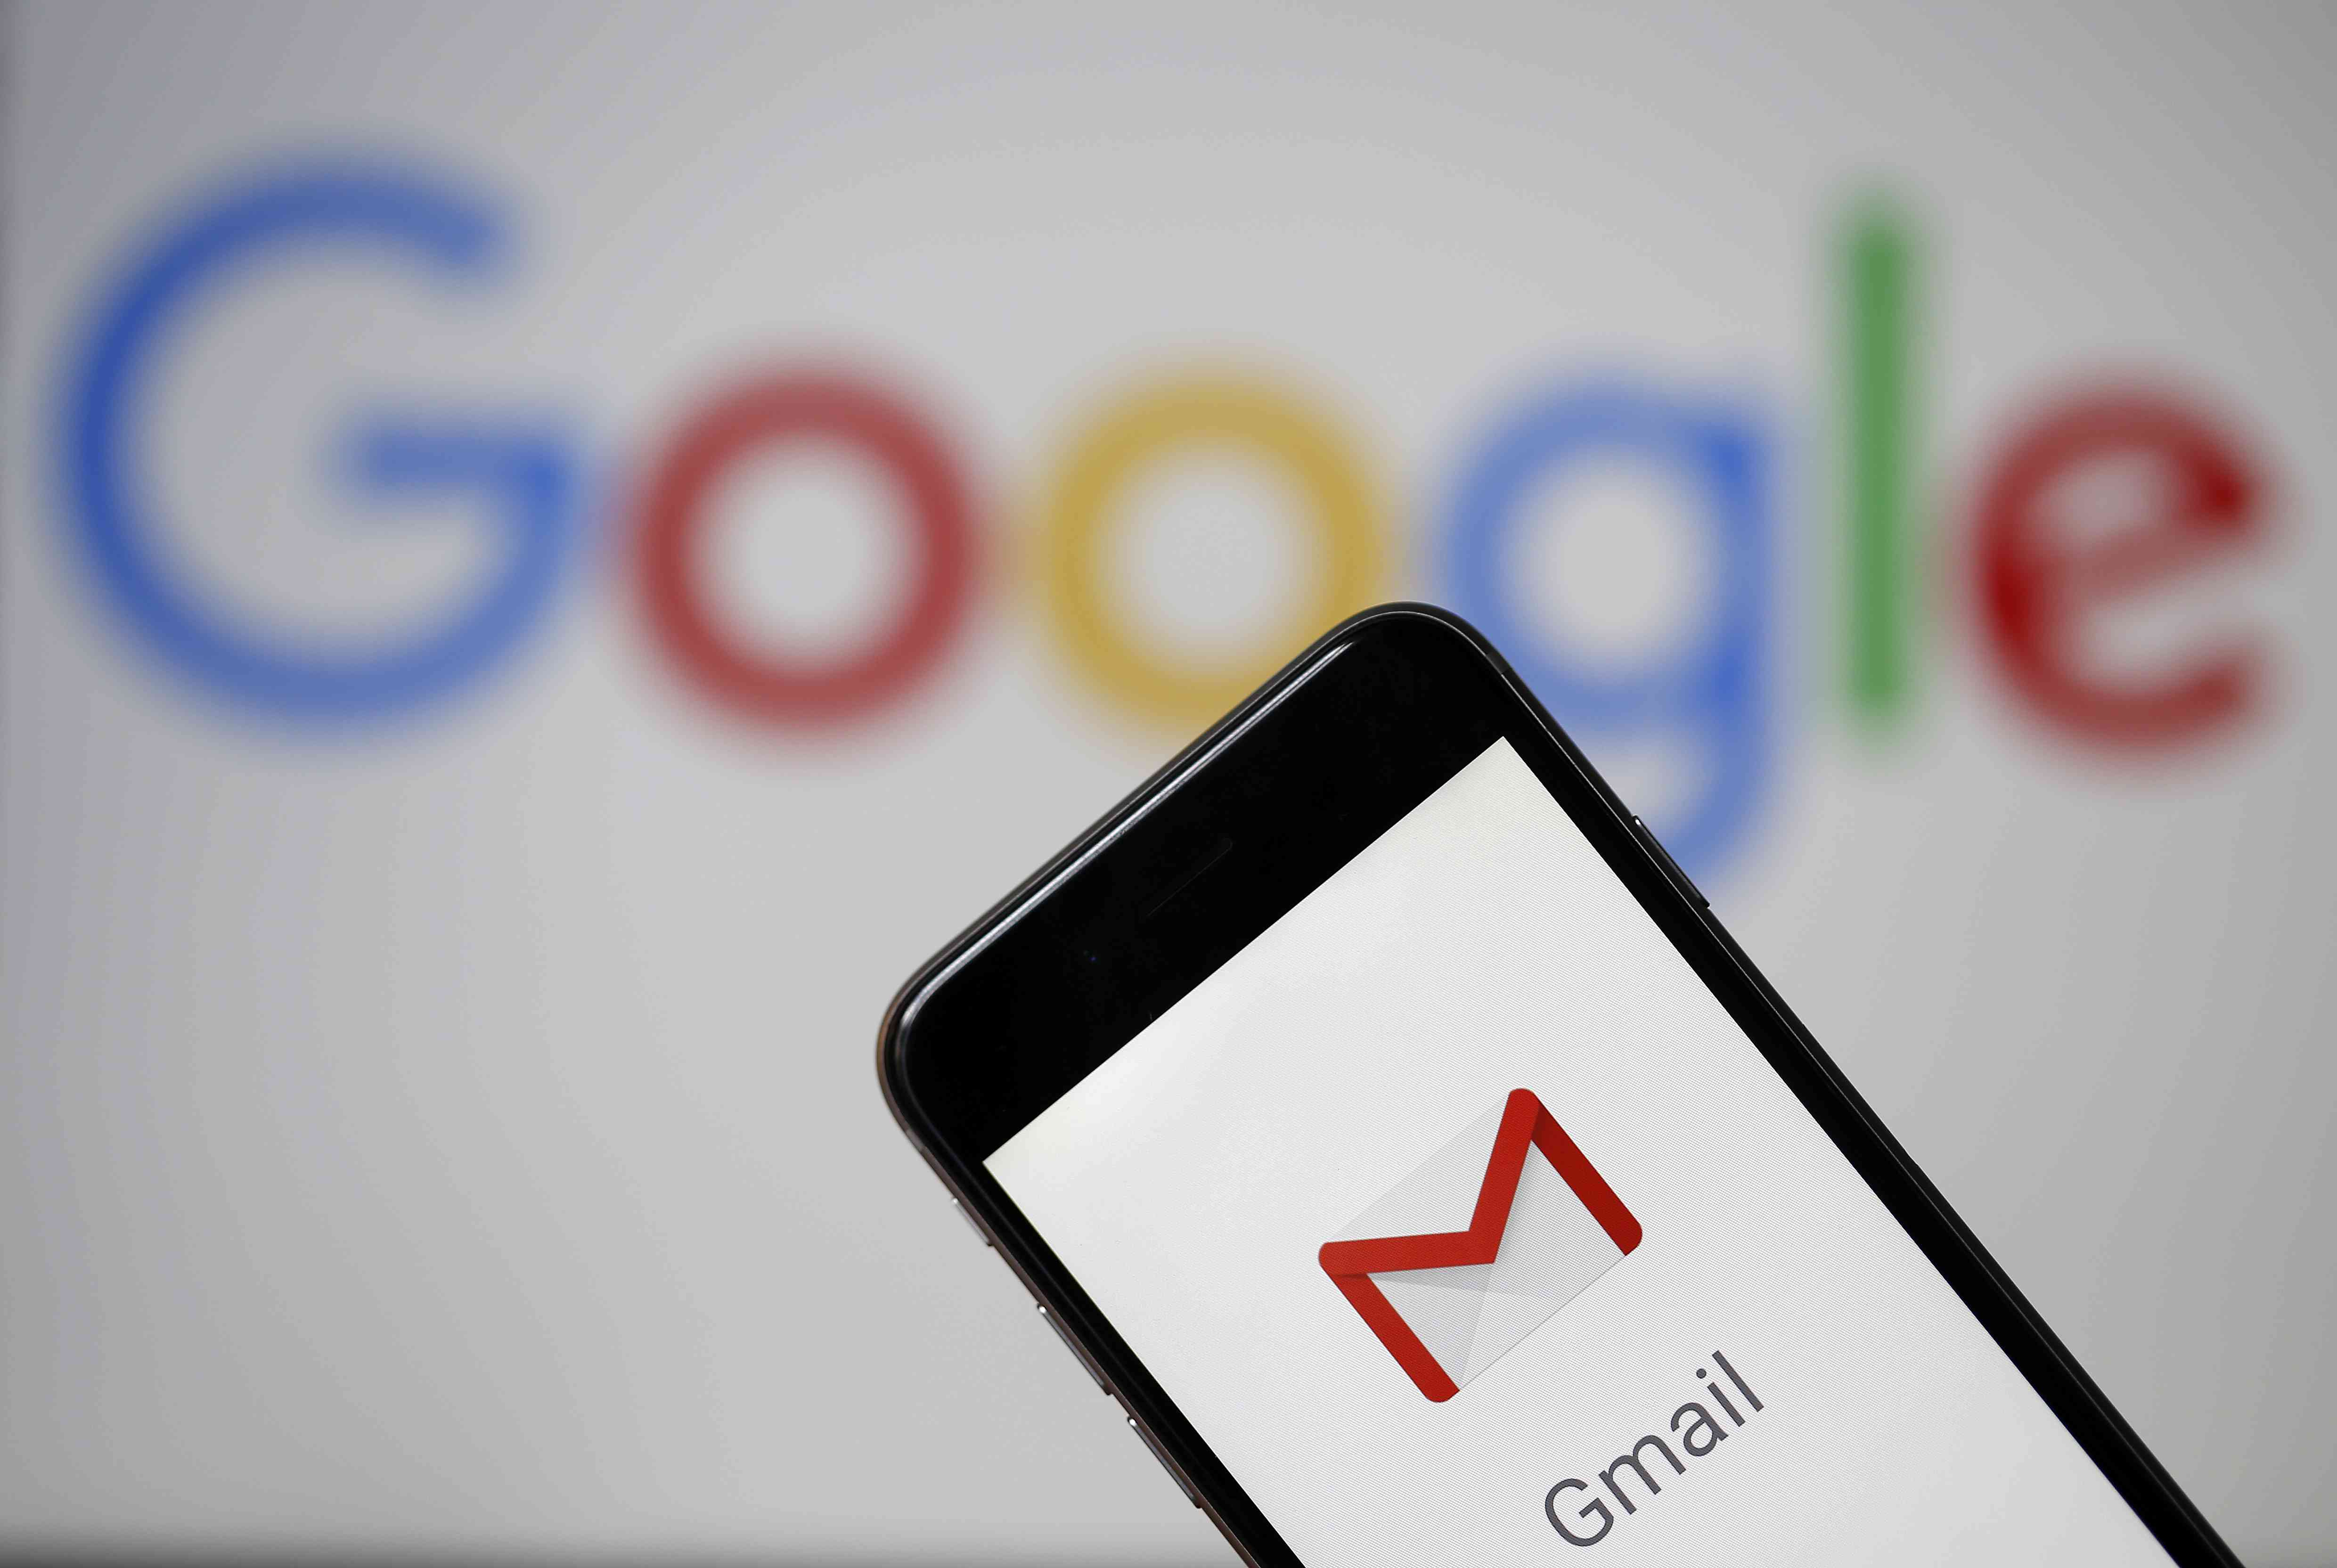 An image of the Gmail app opening on a smartphone.